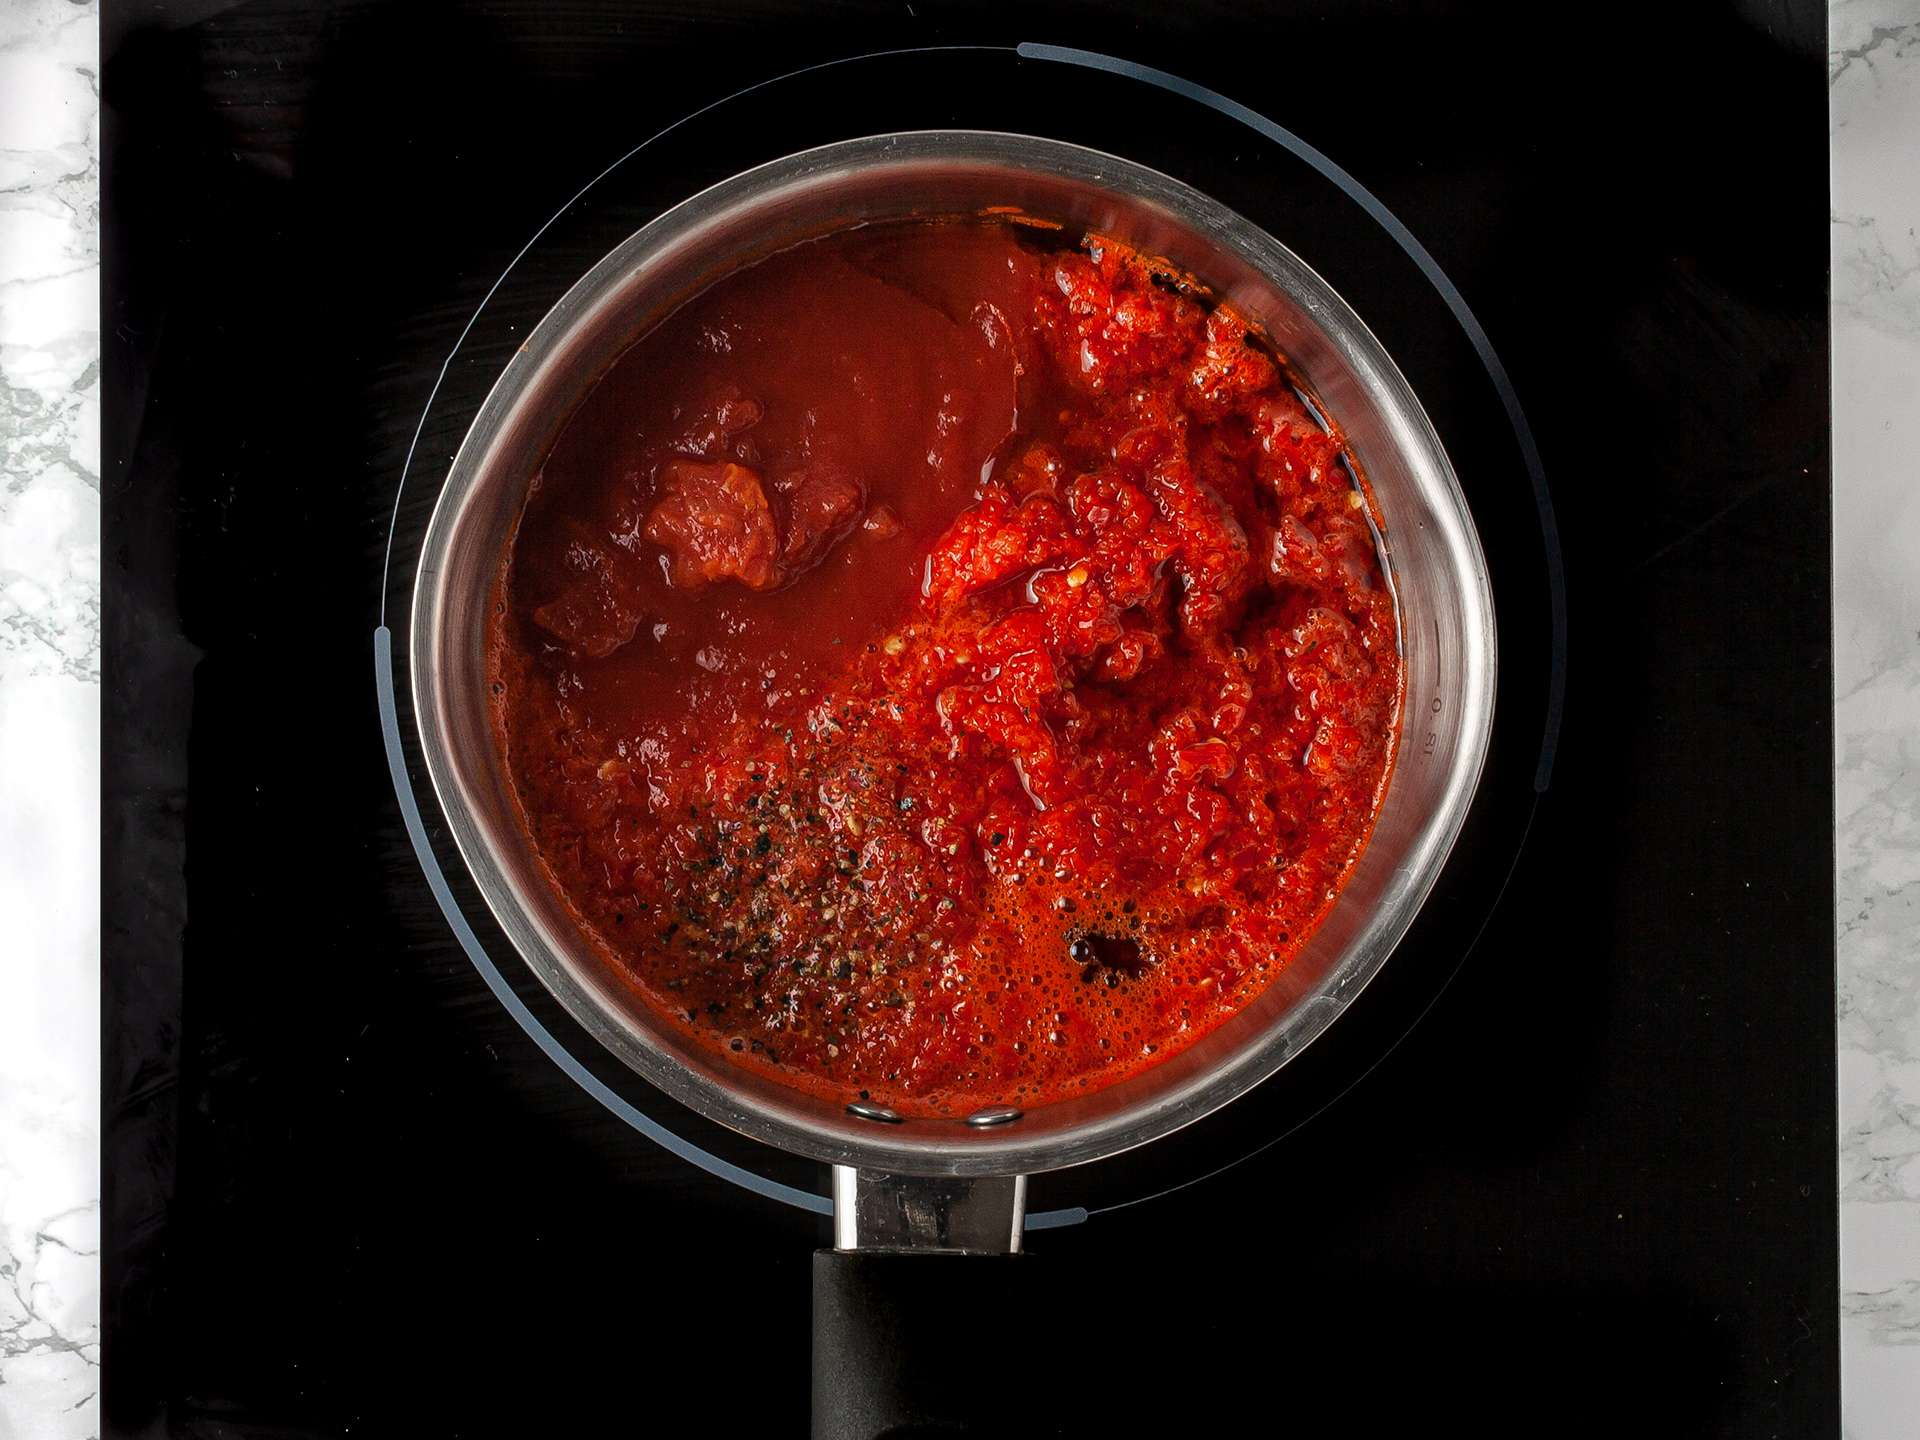 Asian chilli jam cooking in a pot